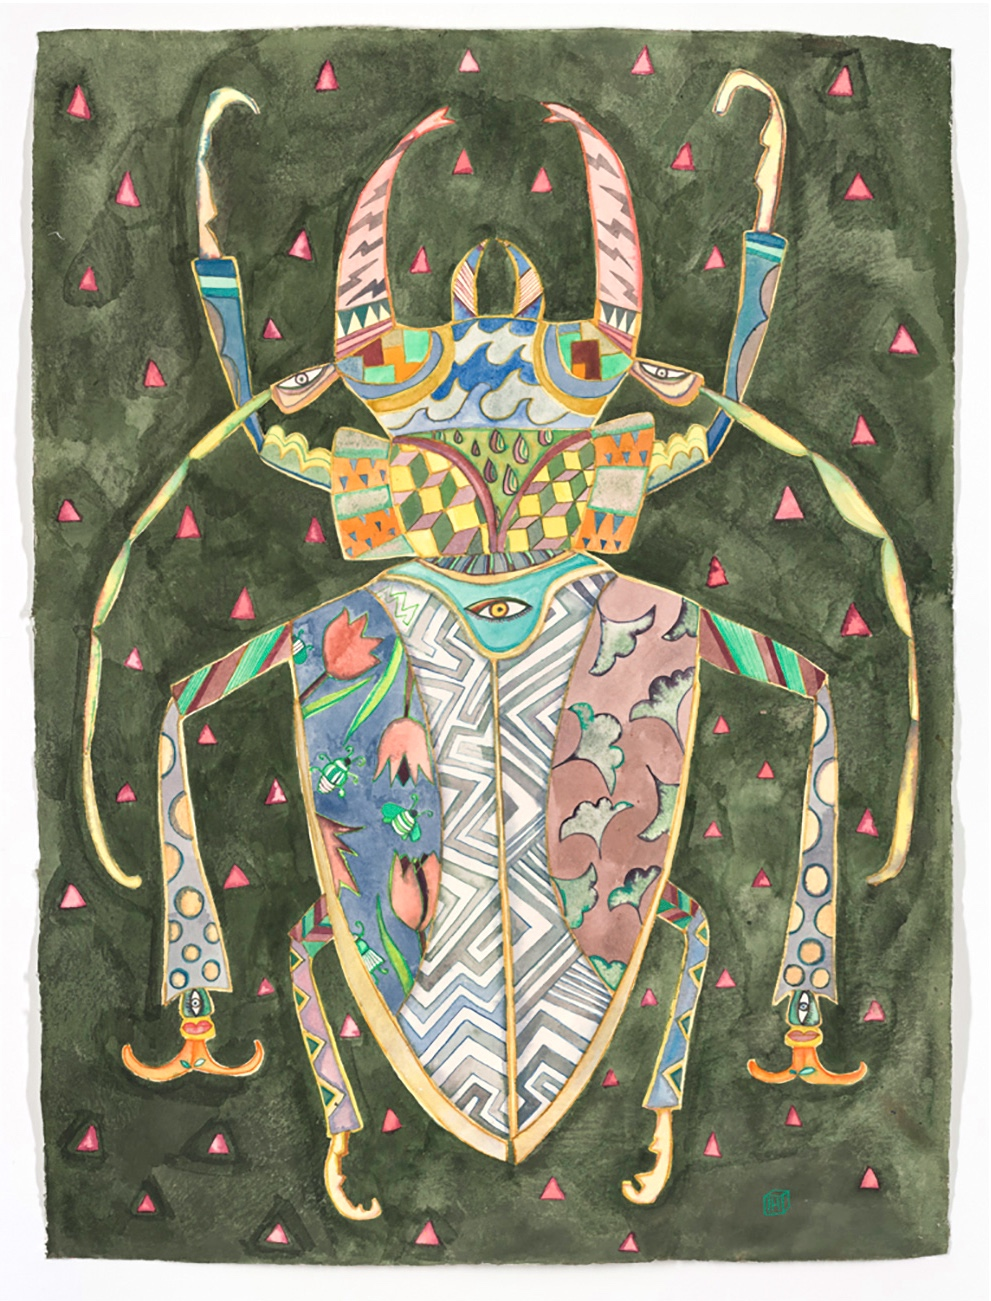 Green coleoptera, 56x76cm, ink on khadi paper